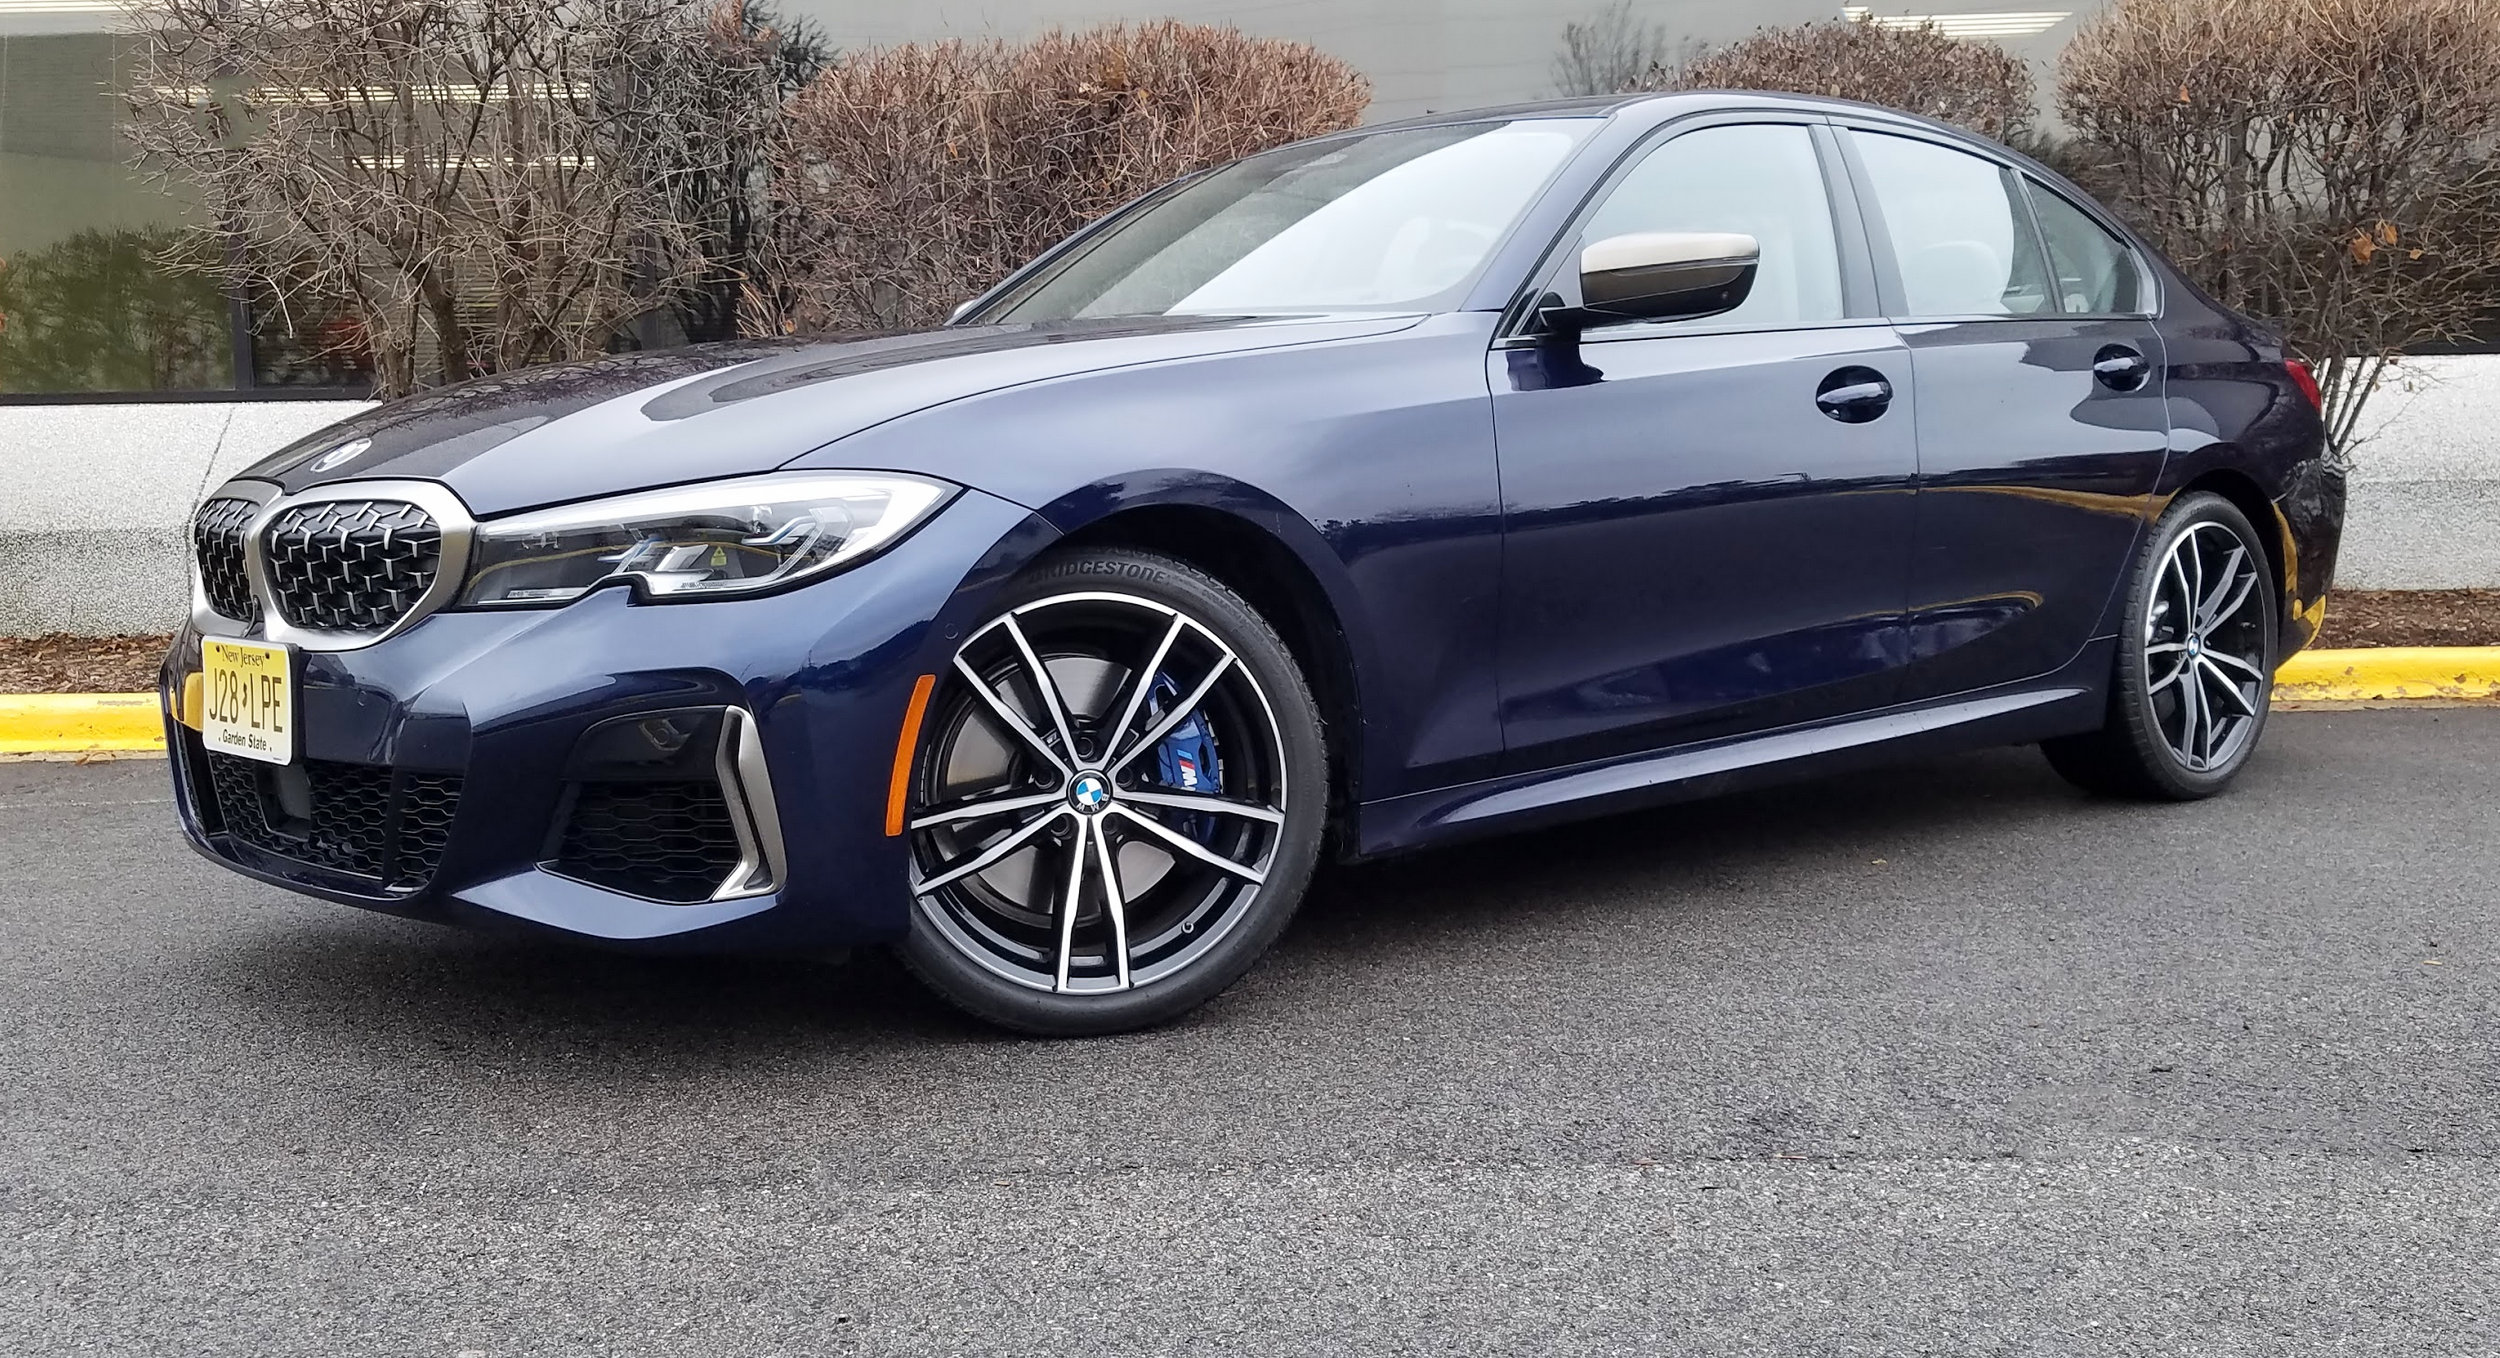 Test Drive 2020 Bmw M340i The Daily Drive Consumer Guide The Daily Drive Consumer Guide